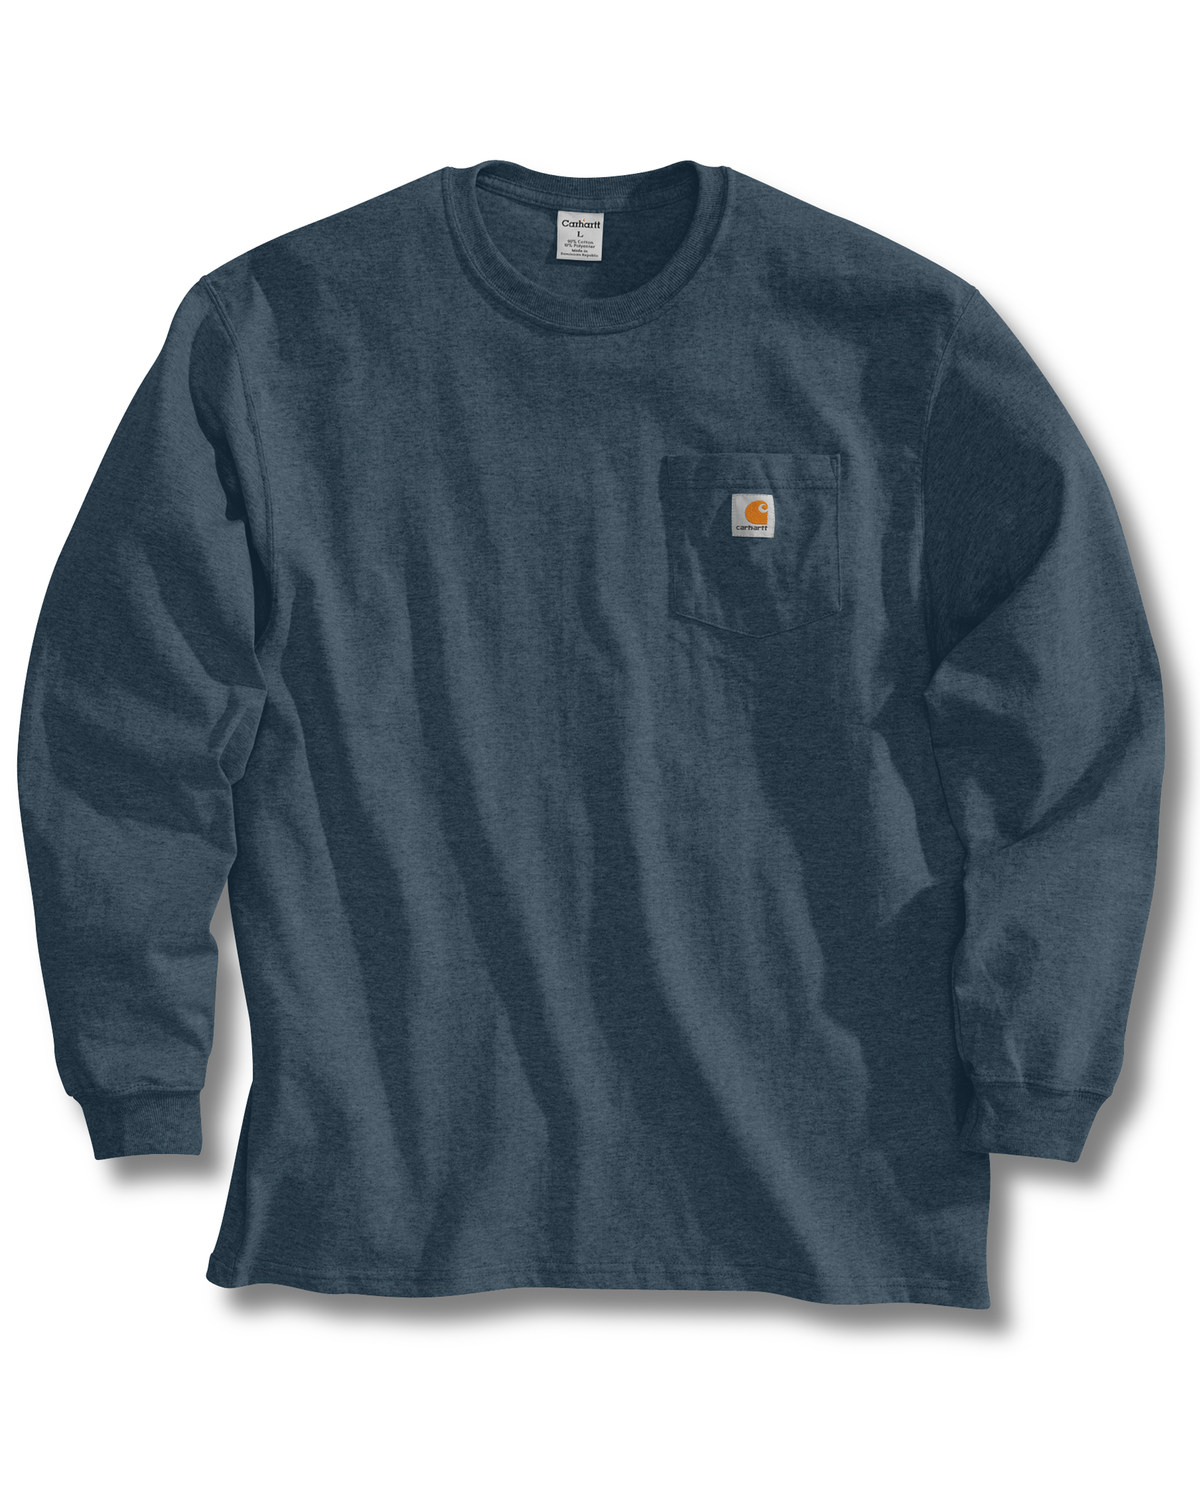 fea7be2c632d Zoomed Image Carhartt Men's Long Sleeve Work T-Shirt, Blue Stone, ...